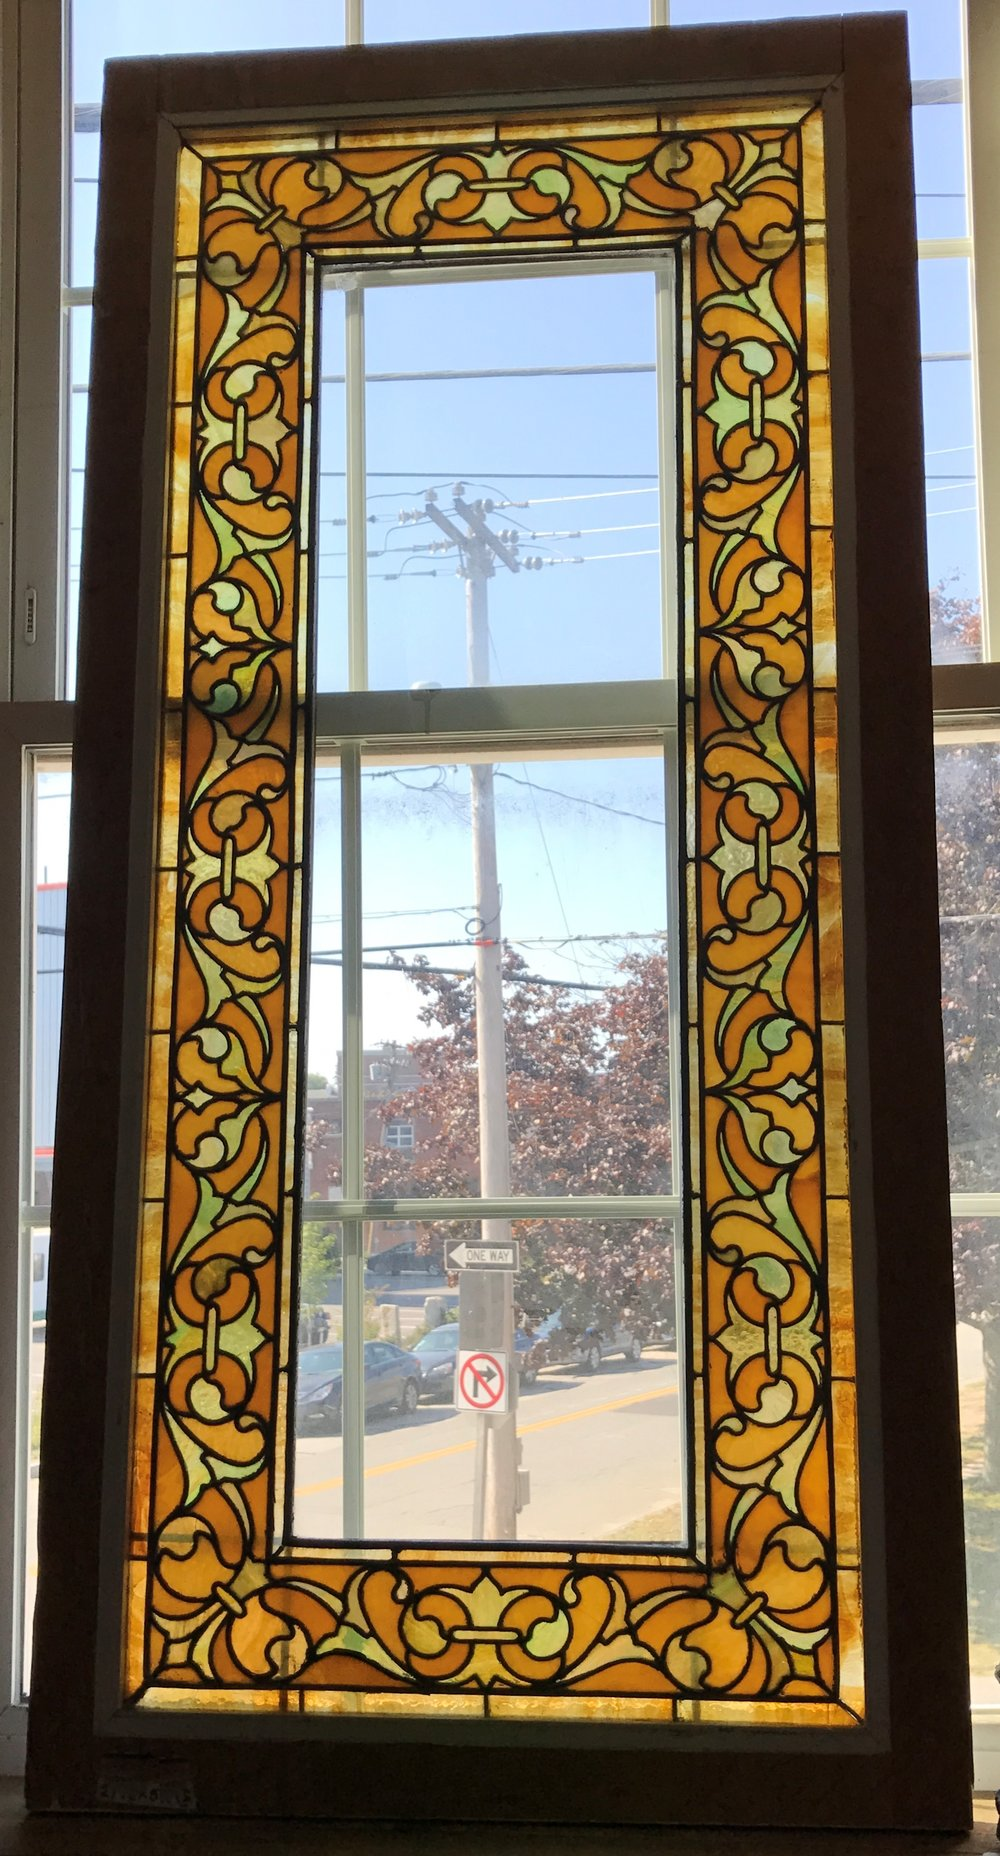 Antique bordered Stained glass window.